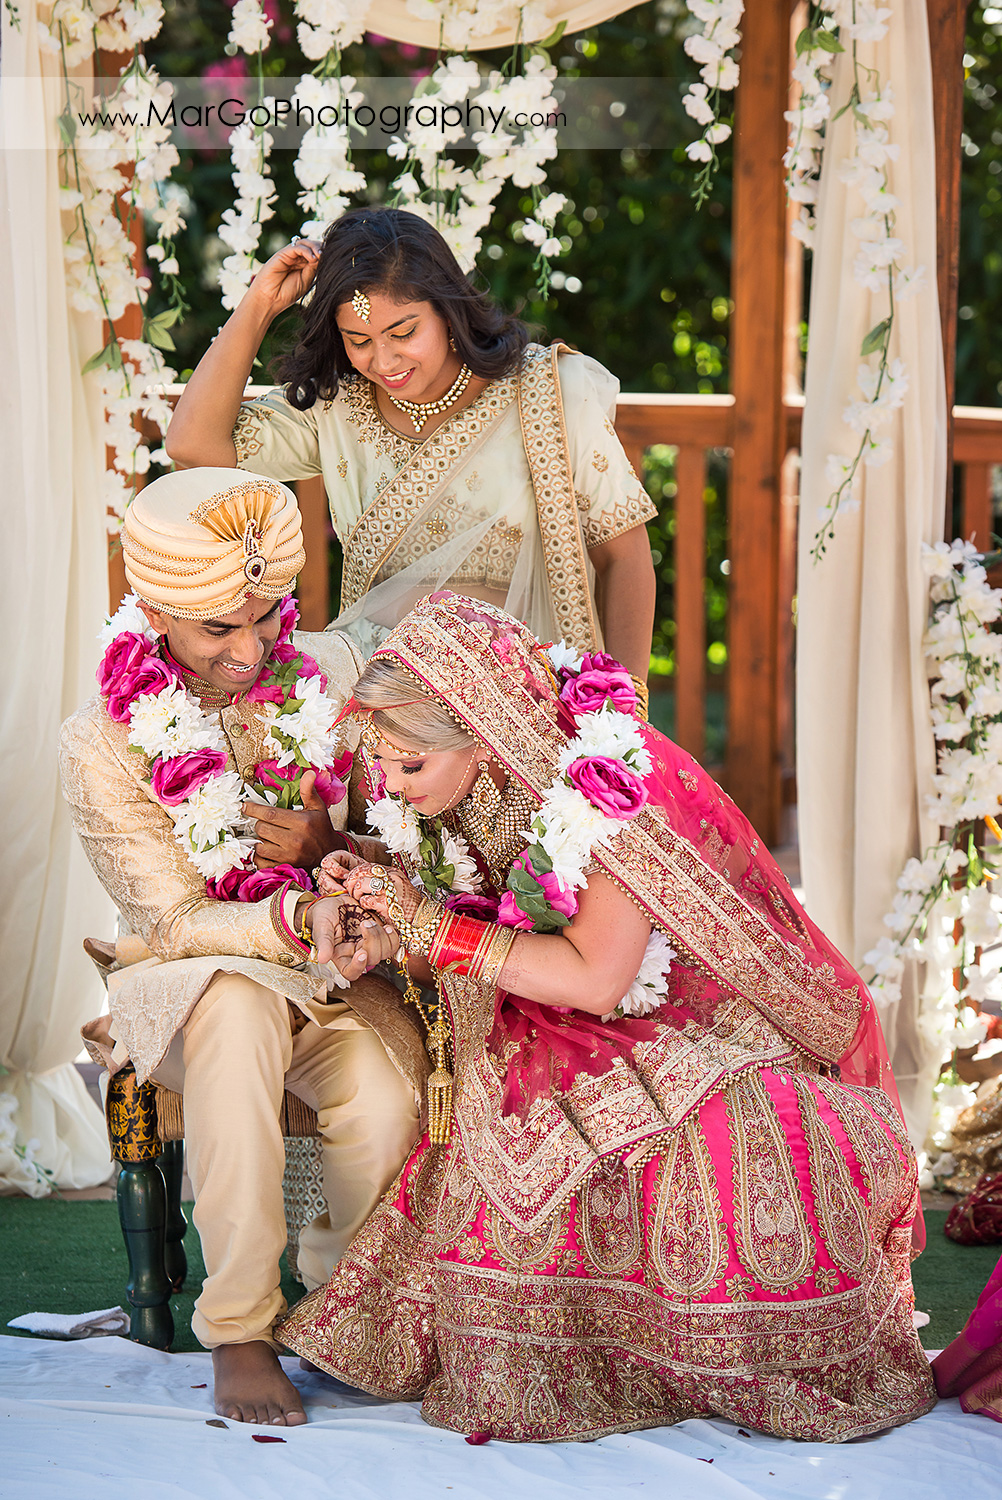 Indian bride untying Kautuka red-yellow coloured ritual protection thread from groom's hand during wedding ceremony at Elliston Vineyards in Sunol